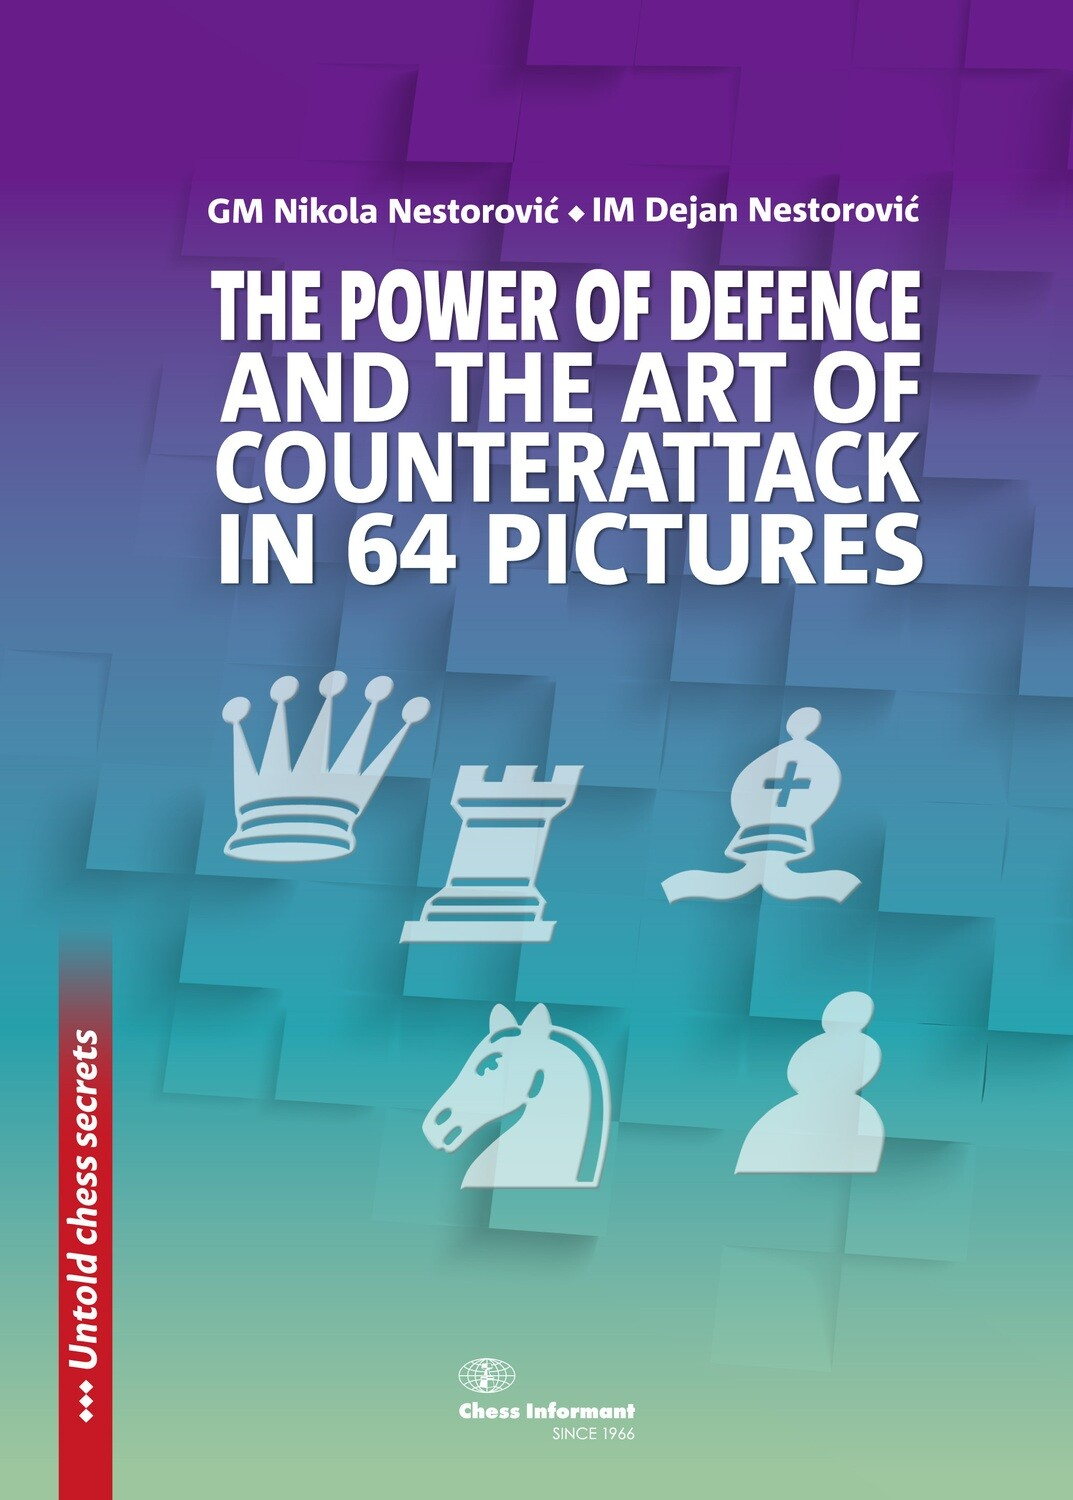 The Power of Defence and the Art of Counterattack in 64 Pictures, Nestor Nestorovic and Dejan Nestorovic